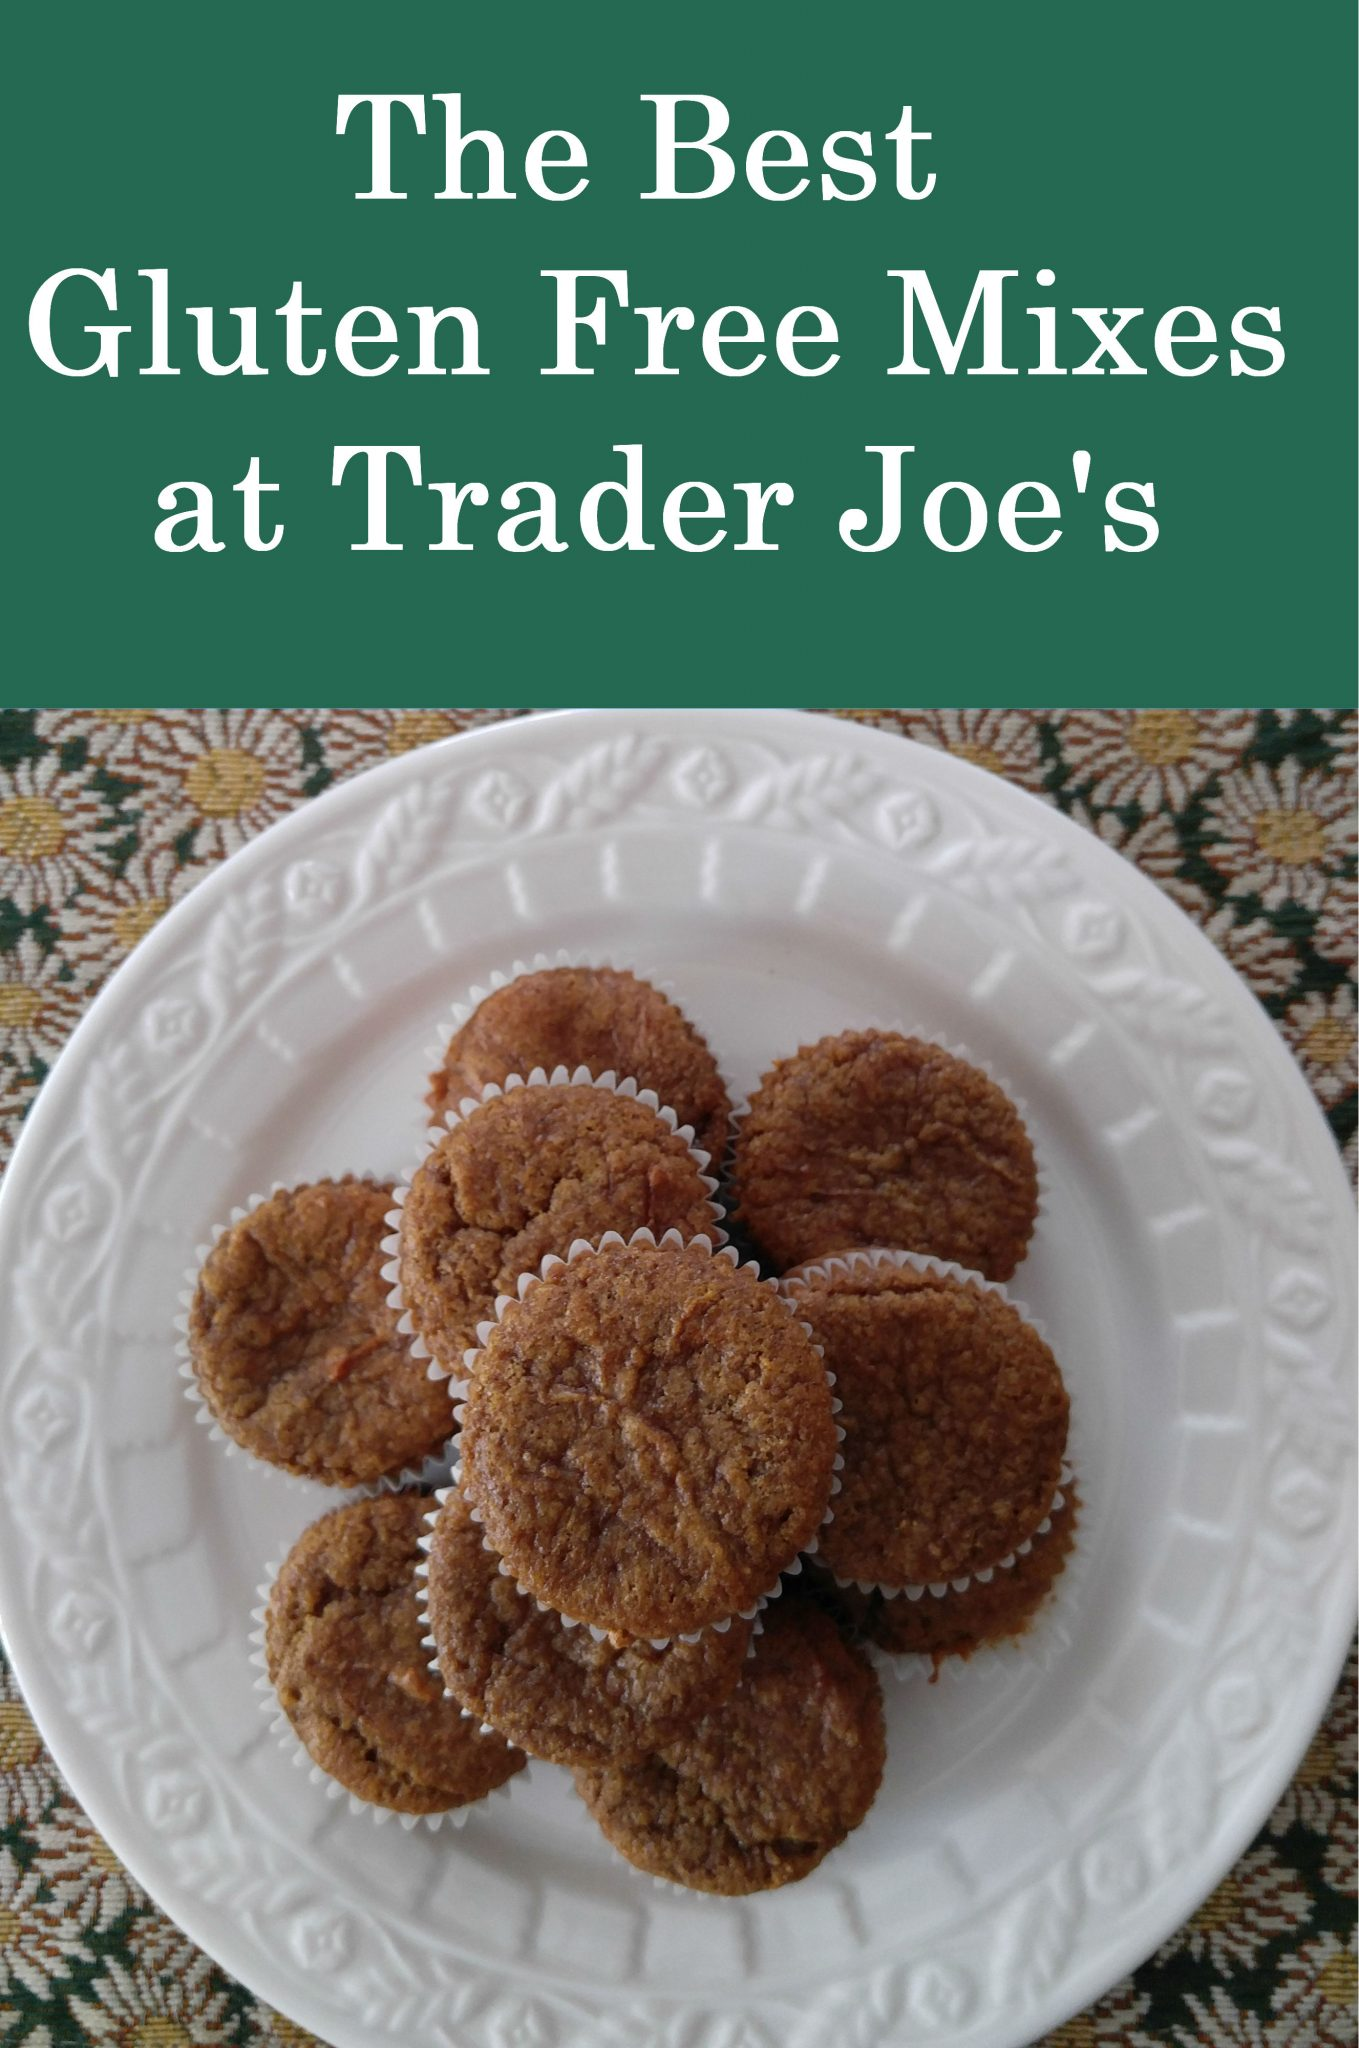 Trader Joe's Gluten Free Mixes- Are They Any Good?